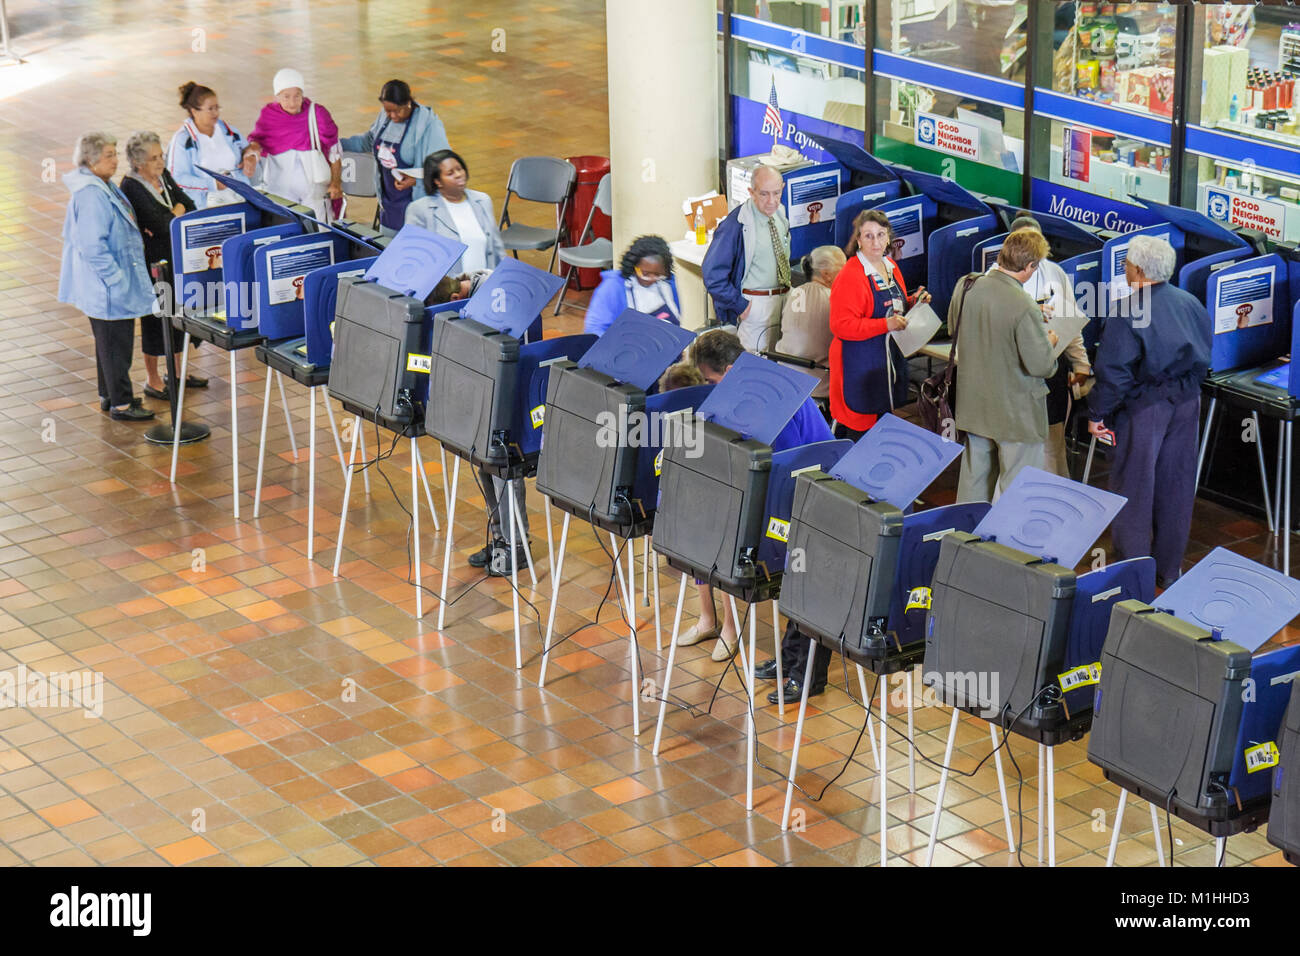 presidential primary early voting machine democracy election decision choice - Stock Image